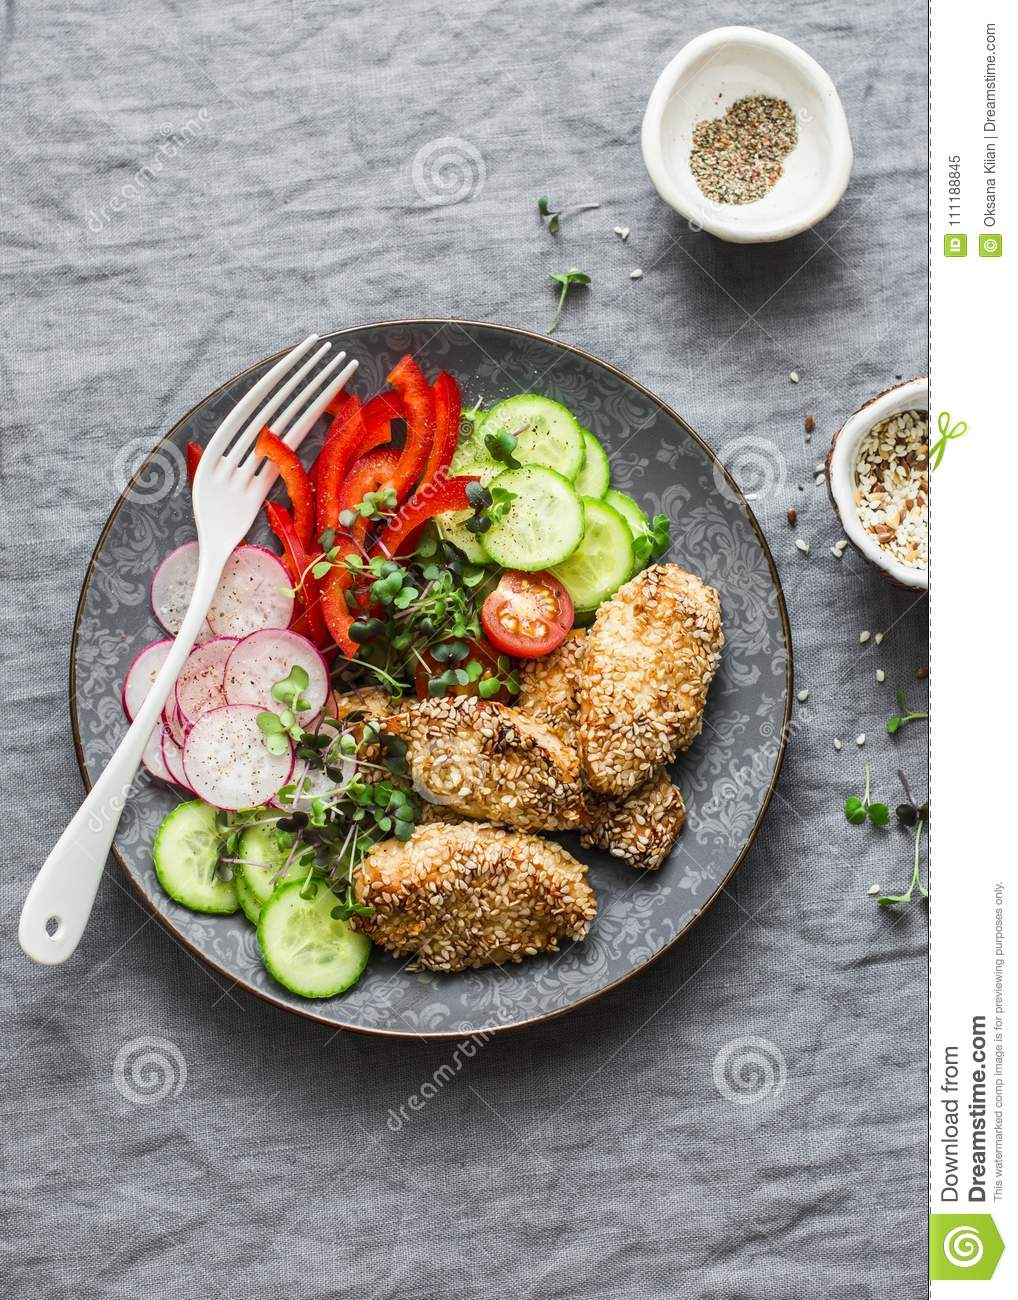 Sesame breading teriyaki baked chicken breast and fresh vegetables. Baked chicken and tomatoes, cucumbers, peppers, radishes, micr